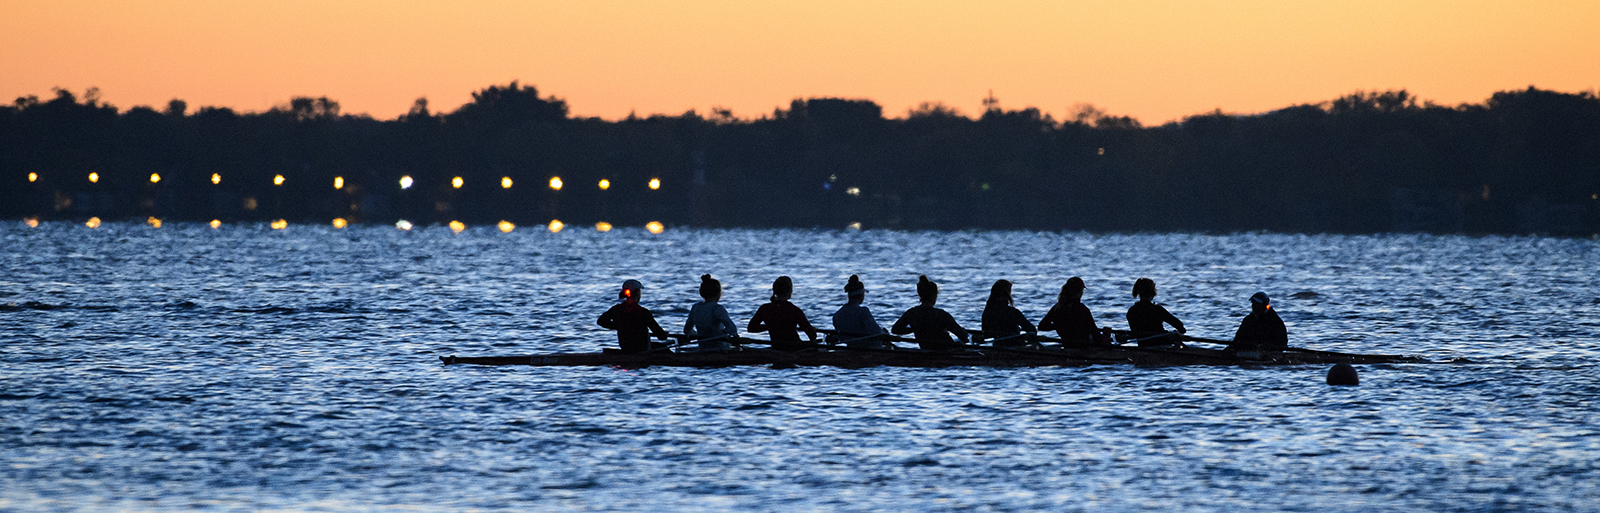 With nighttime giving way to dawn, the Wisconsin women's crew team rows along Lake Mendota near the University of Wisconsin-Madison campus during an autumn sunrise practice on Oct. 14, 2015. (Photo by Jeff Miller/UW-Madison)